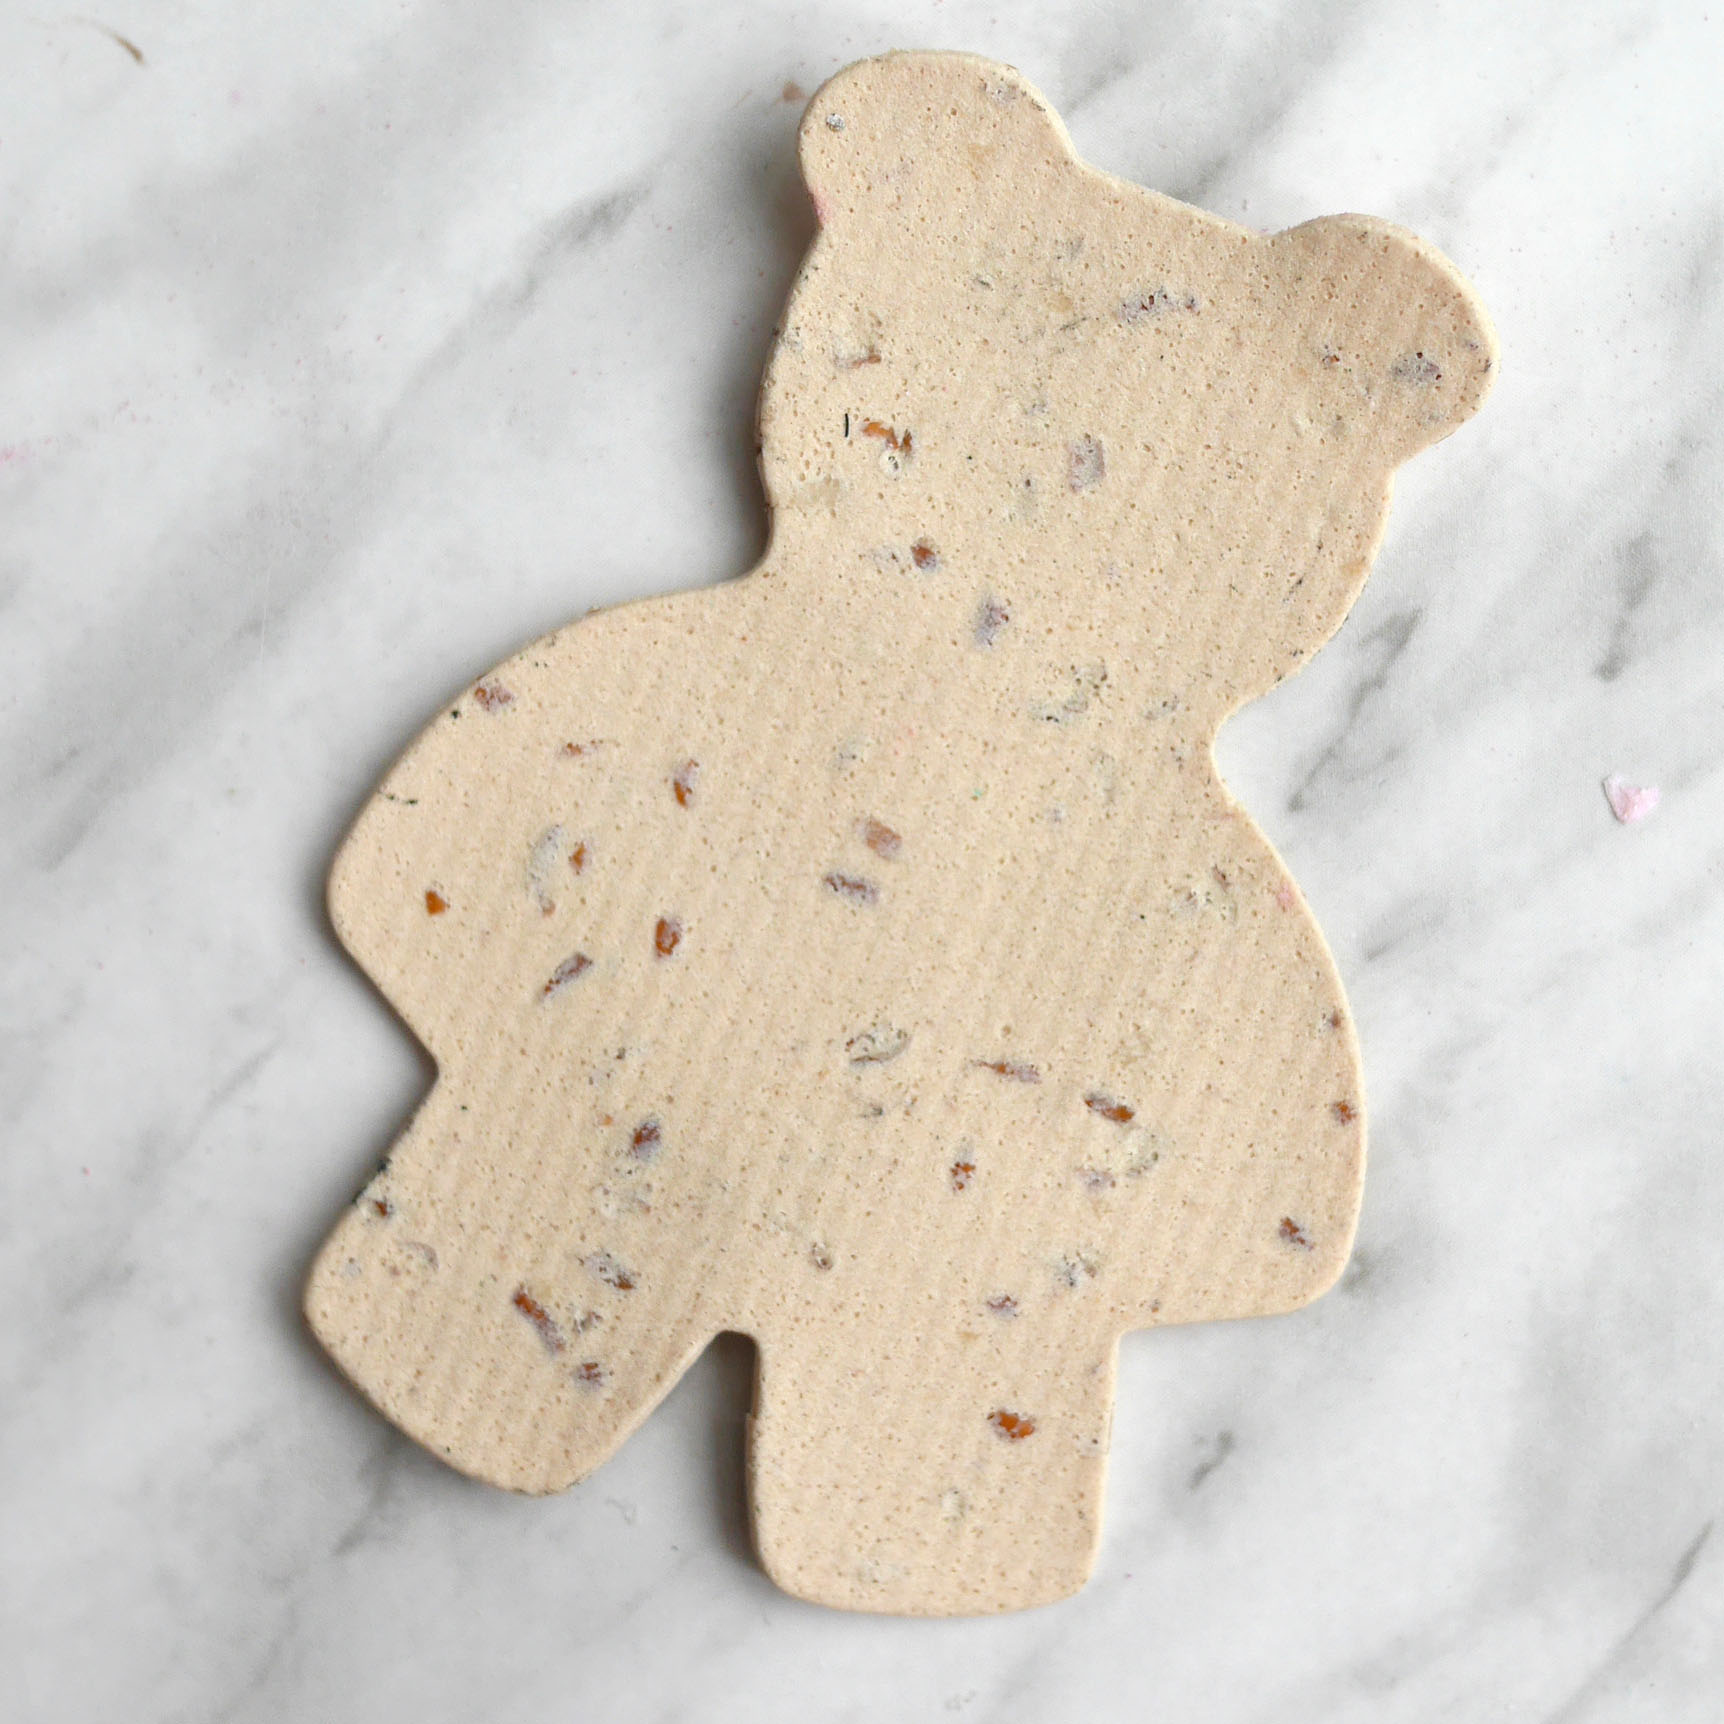 LUSH Holiday 2017 collection NEW Butterbear Wash Card